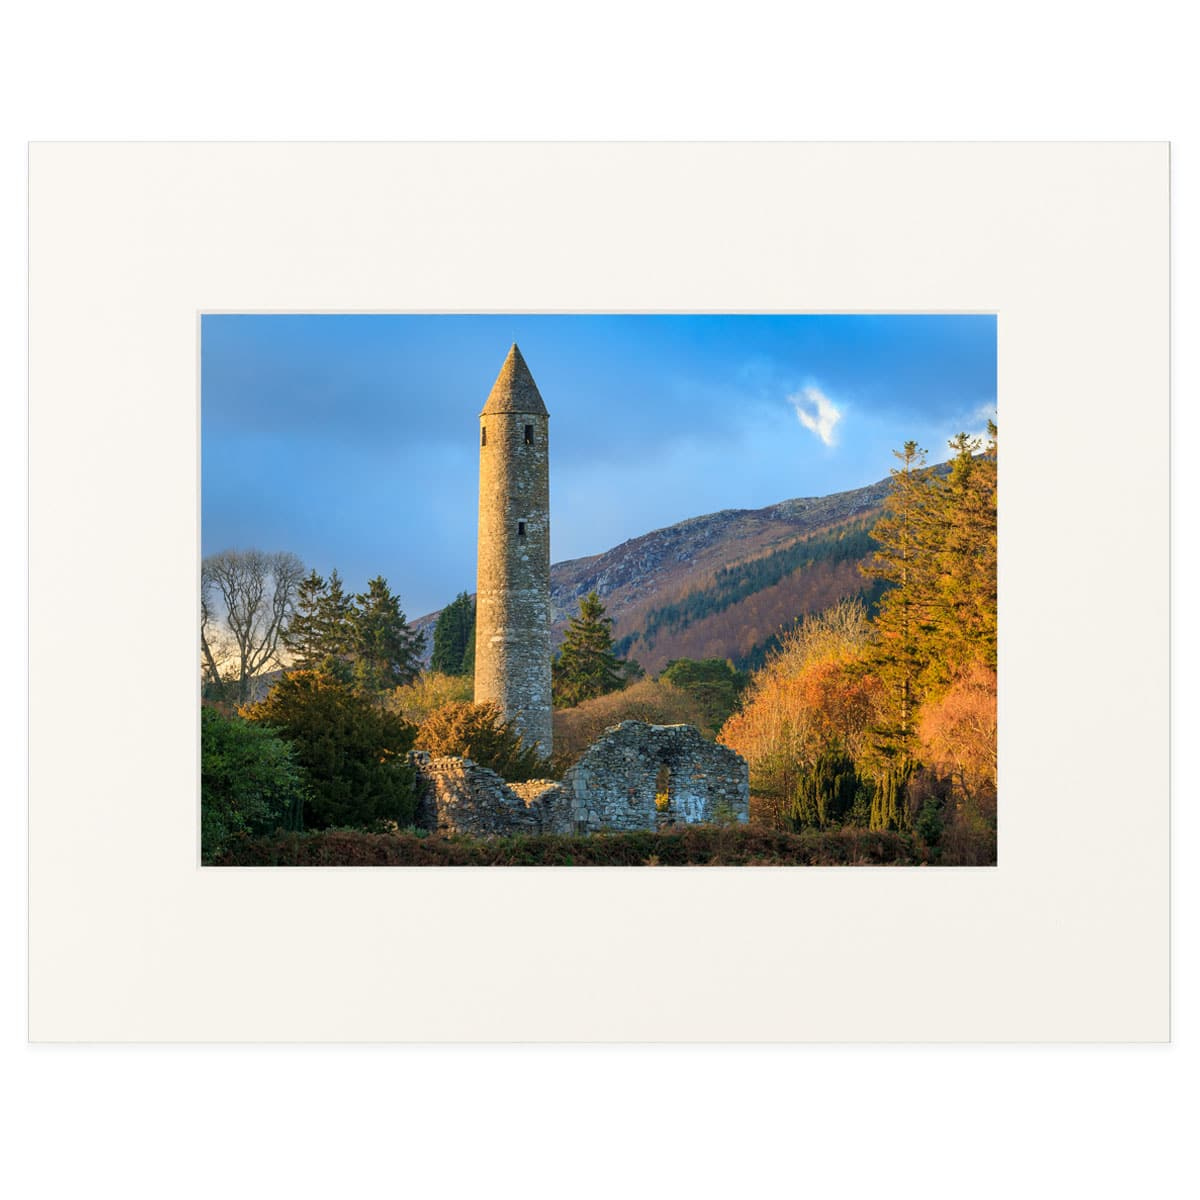 The Round Tower at Glendalough monastic city, County Wicklow